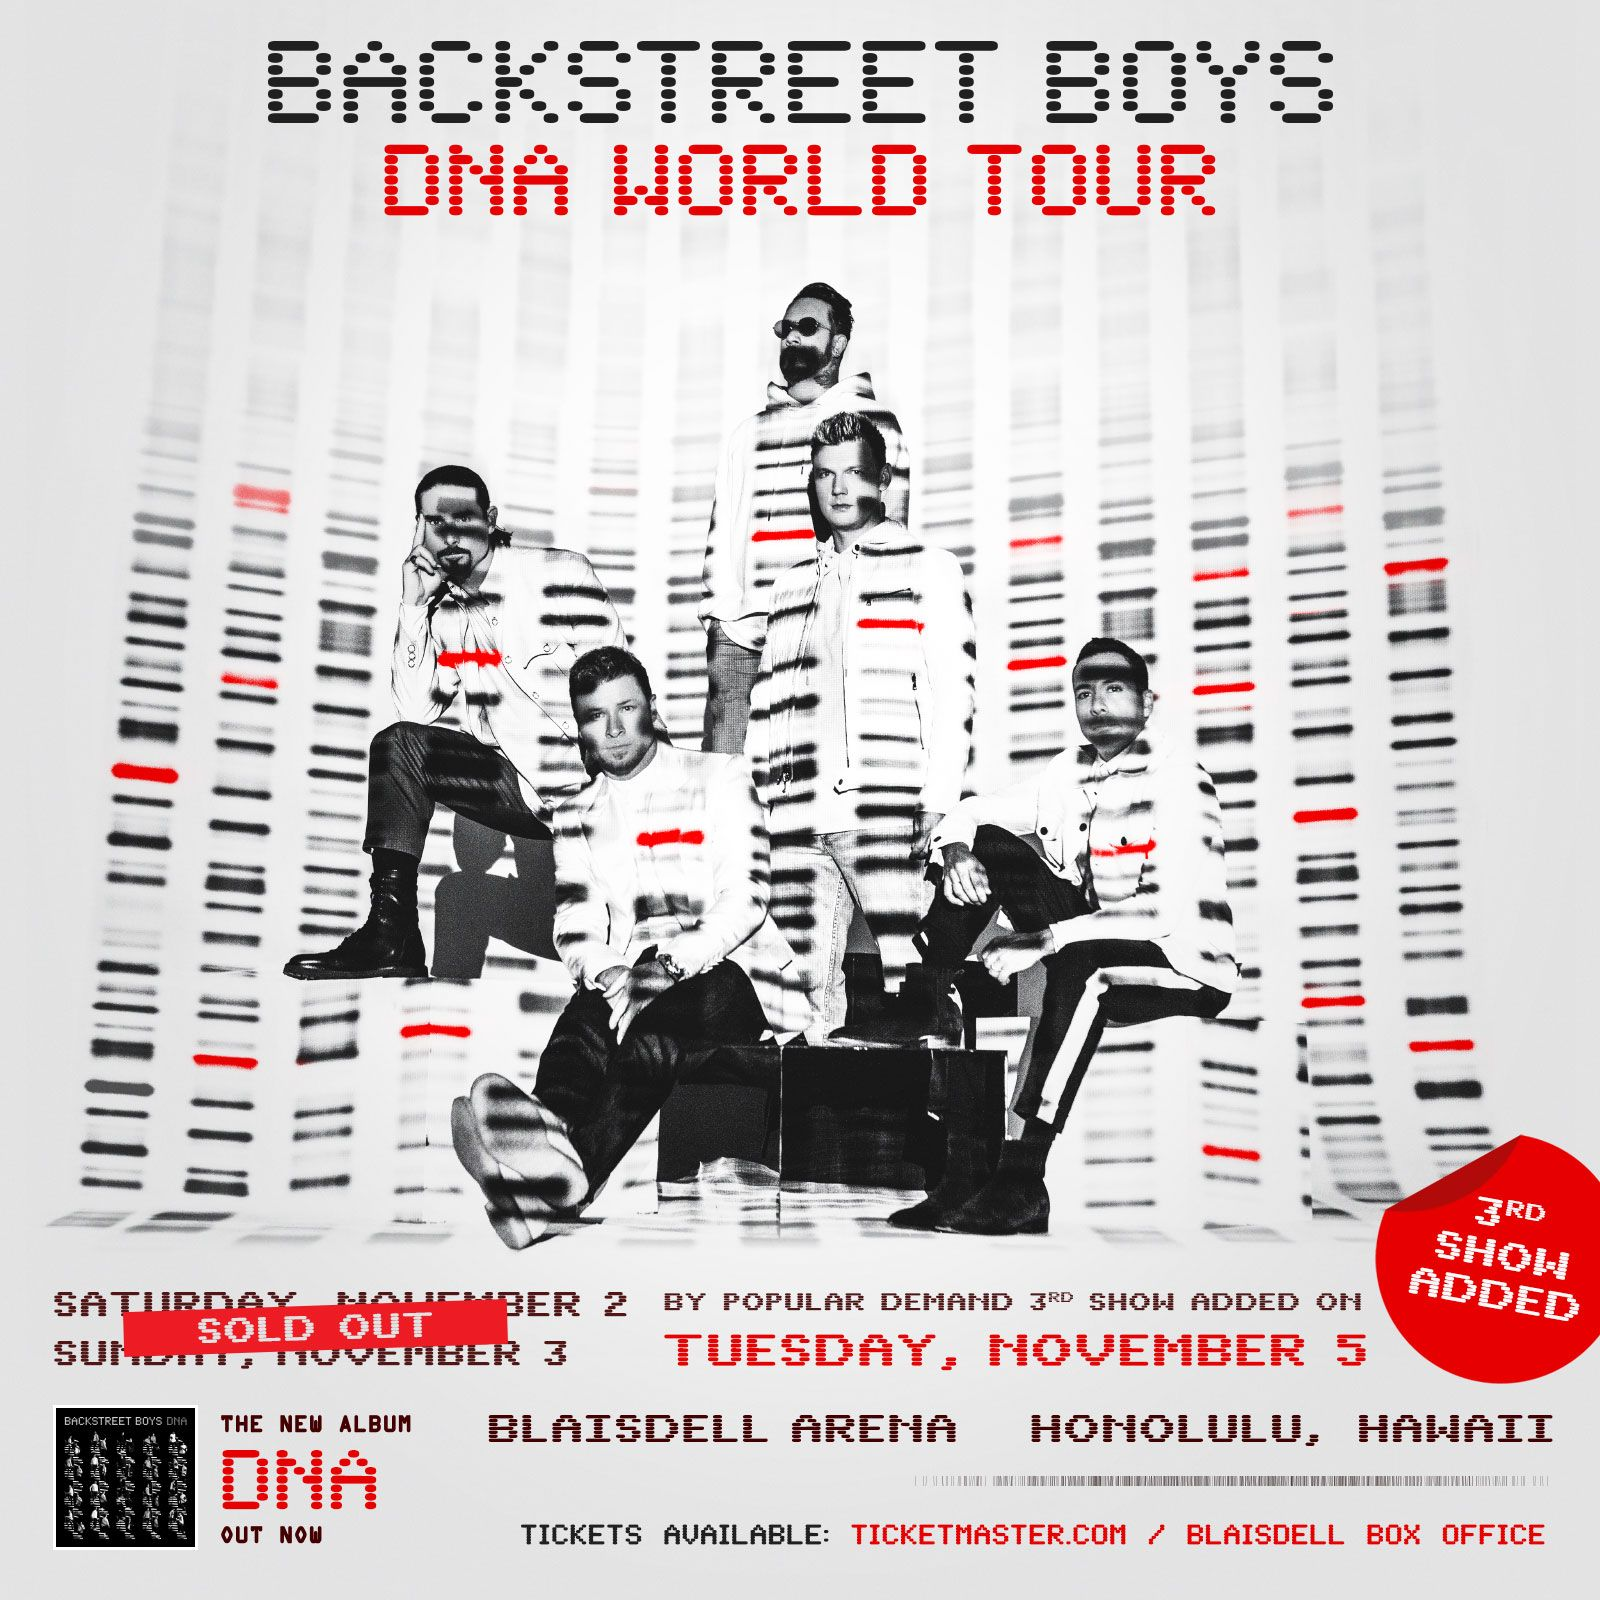 BackstreetBoys_ig_1600x1600_3rdshow.jpg